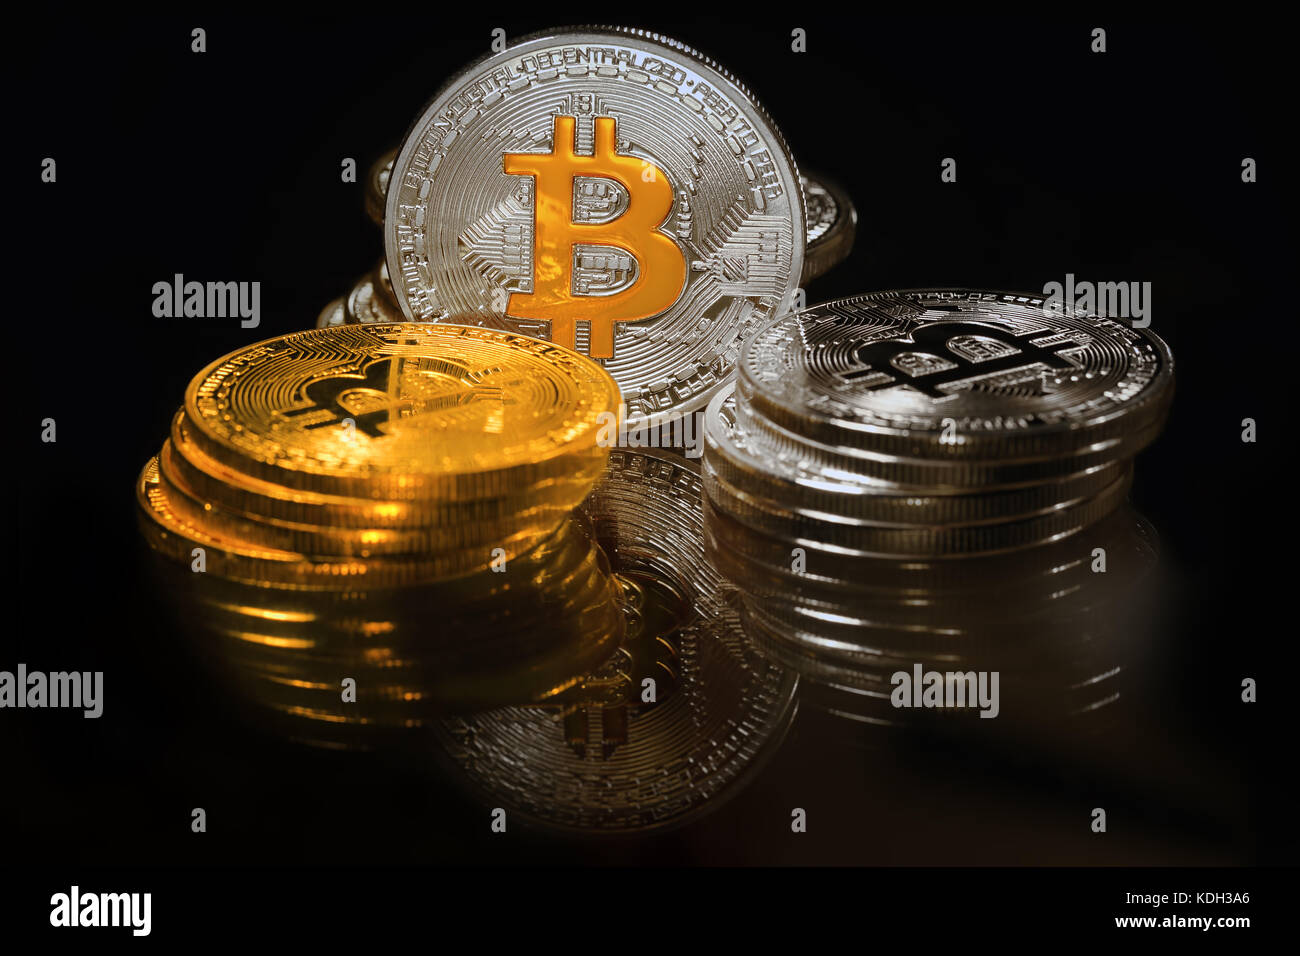 Golden and silver bitcoins on black background. Bitcoin is cryptocurrency Stock Photo